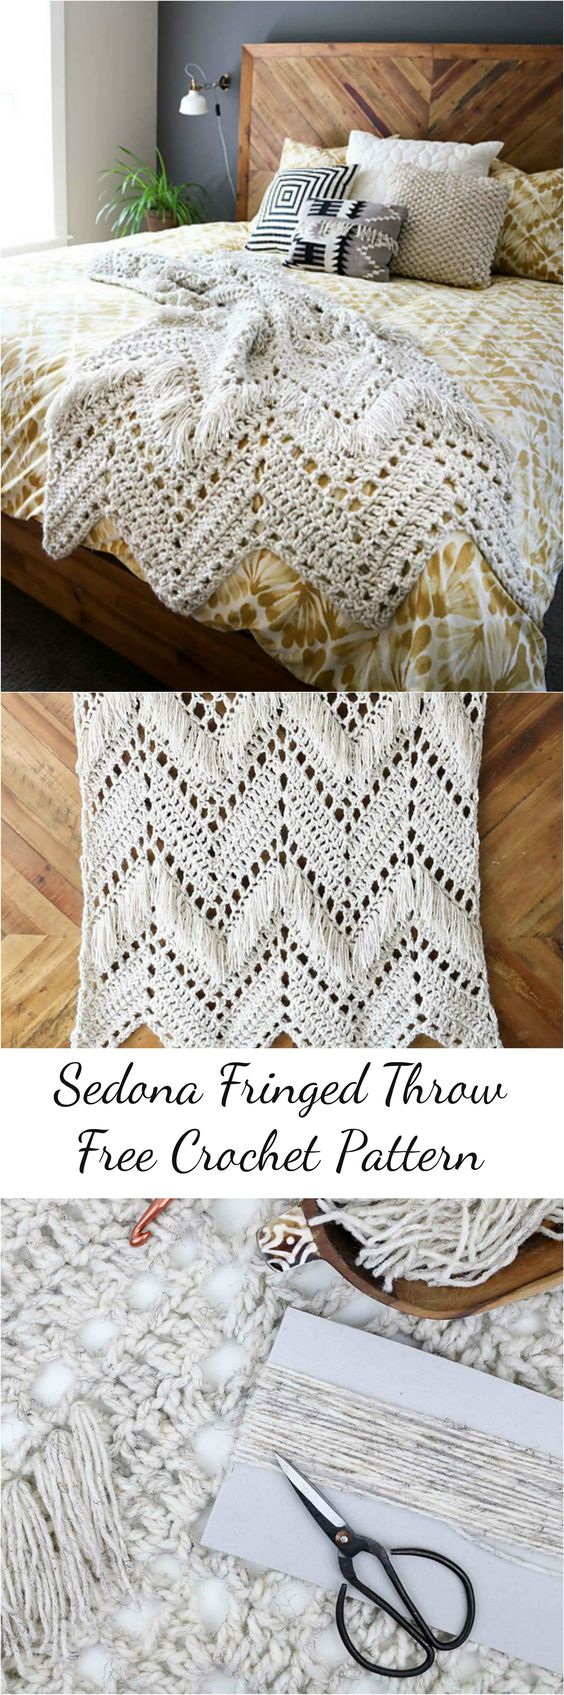 Sedona Fringed Crochet Throw - Free Crochet Pattern! #crocheting #homedecor